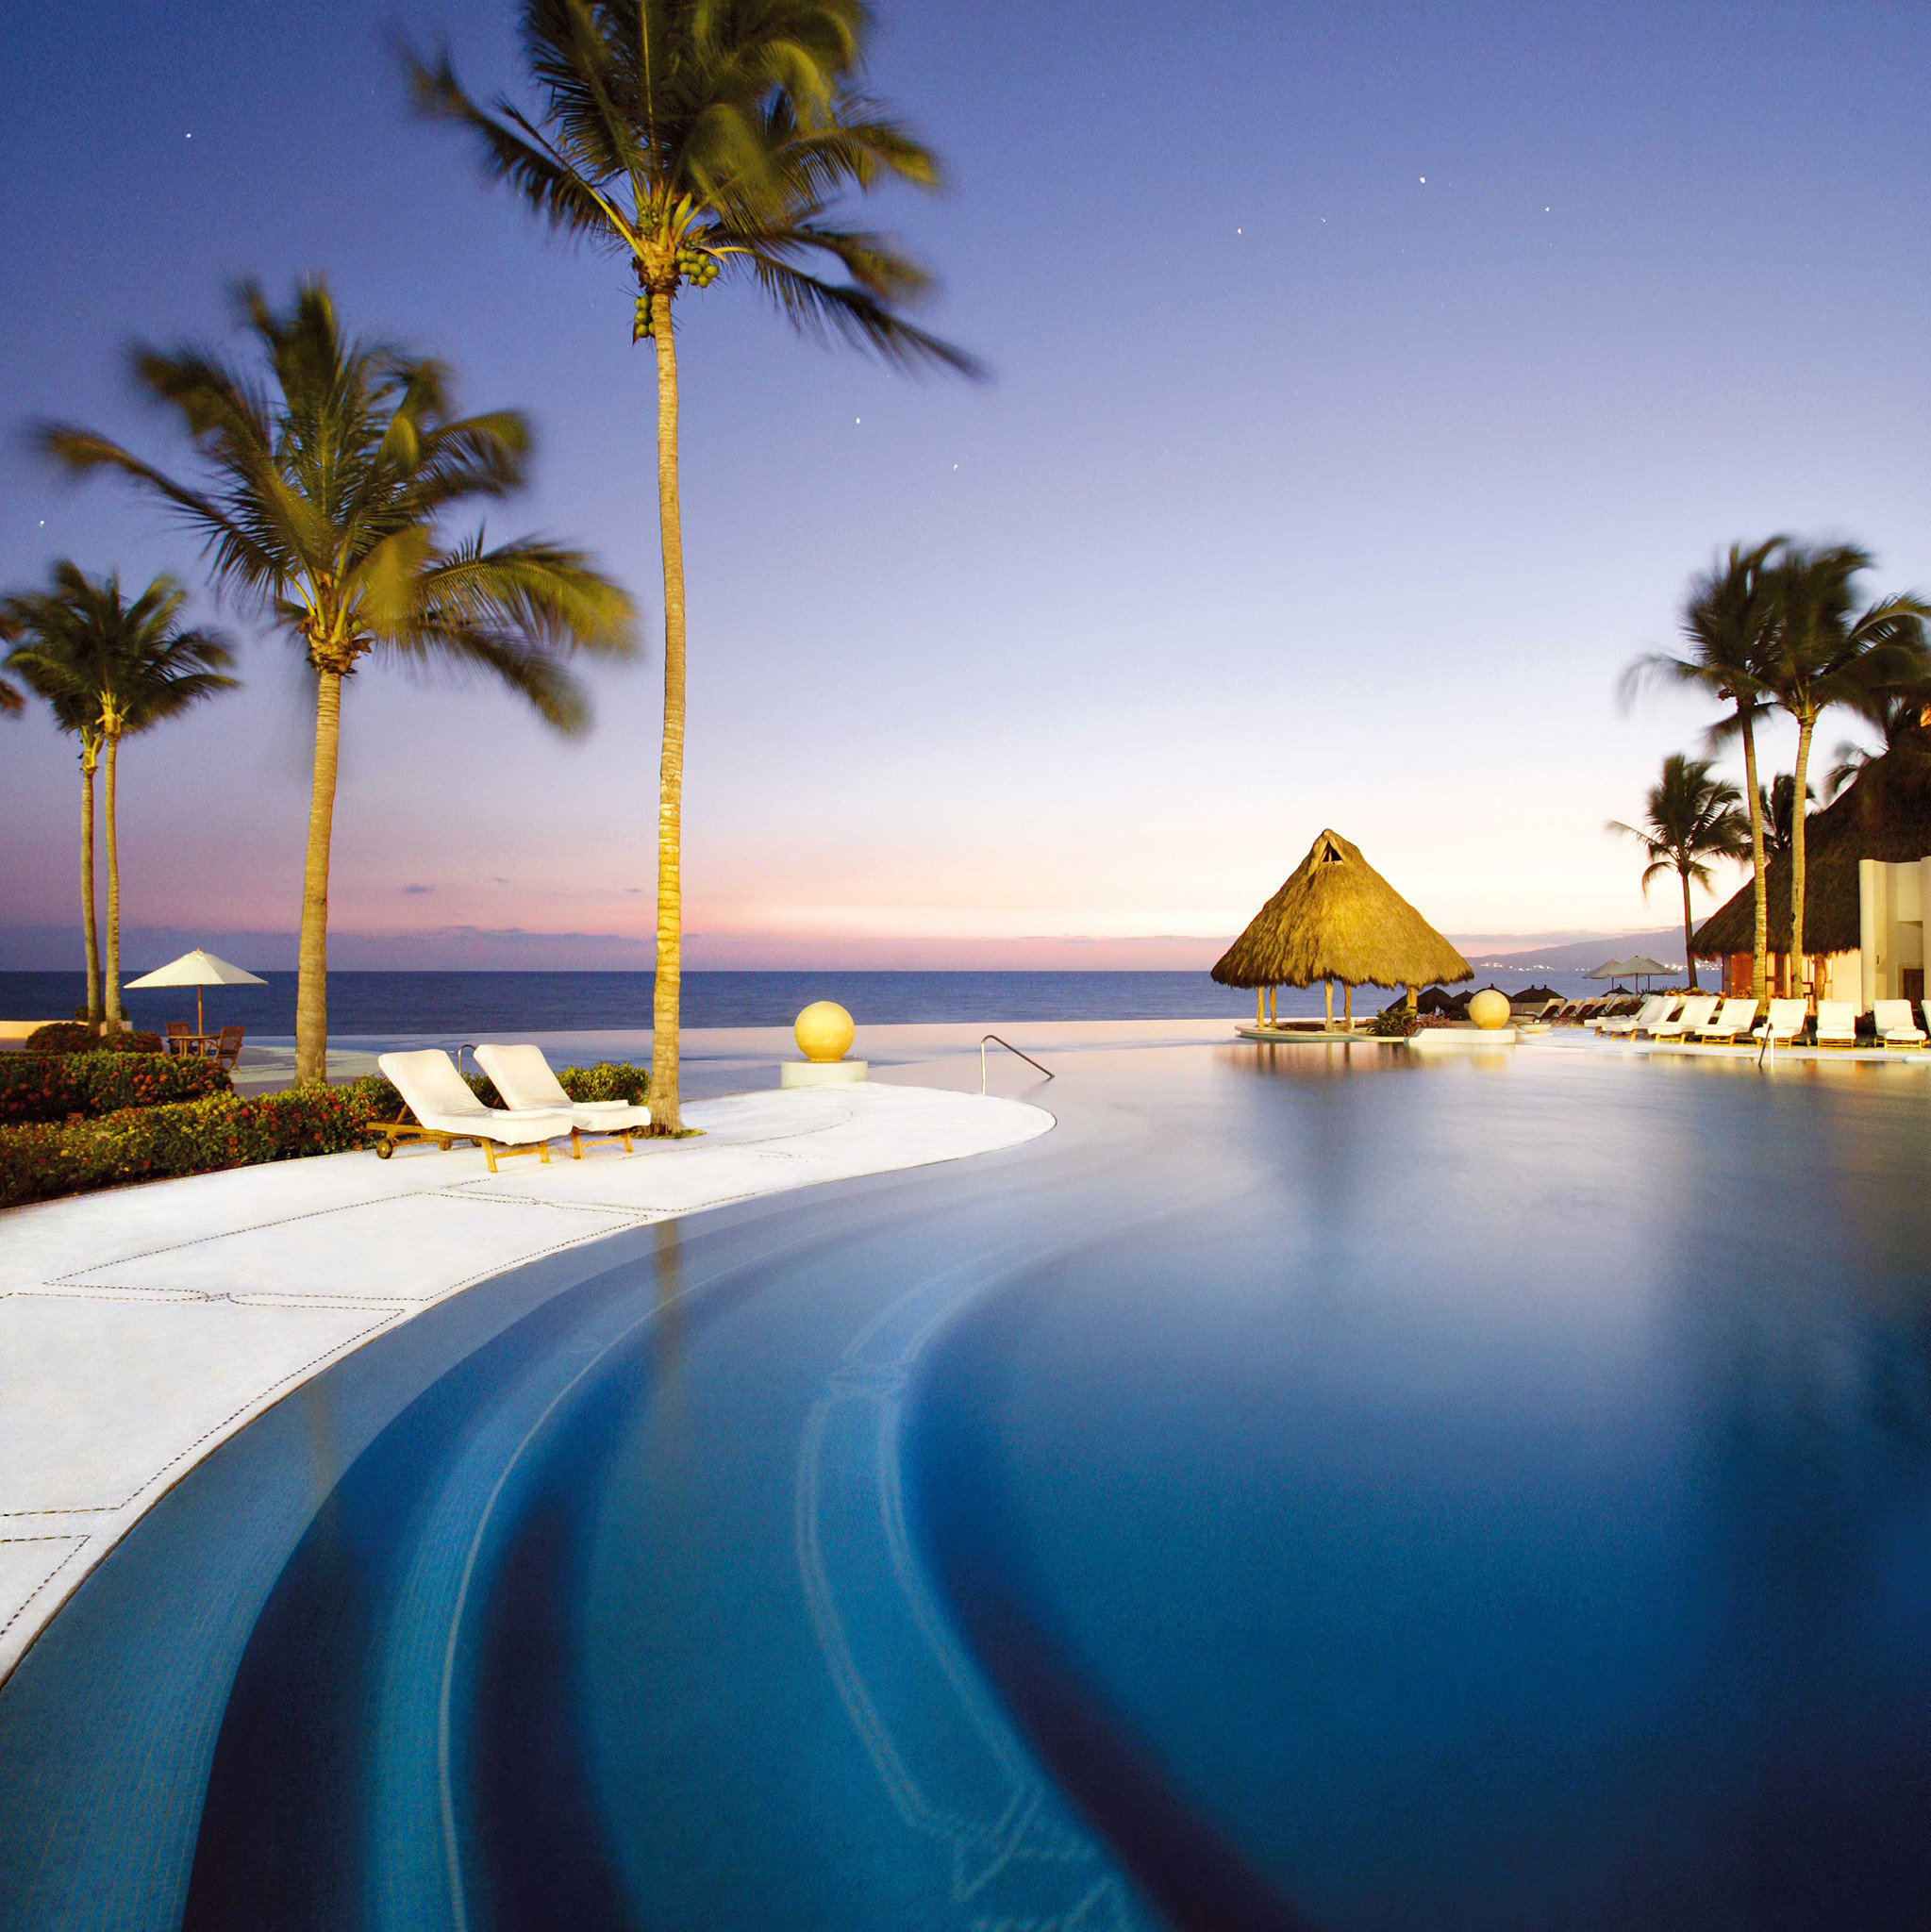 All-Inclusive Resorts Beach Beachfront Hotels Patio Pool Resort Romance Romantic Sunset Tropical sky tree outdoor palm Sea Ocean vacation swimming pool reflection arecales morning caribbean sunlight evening dusk bay tropics palm family shore